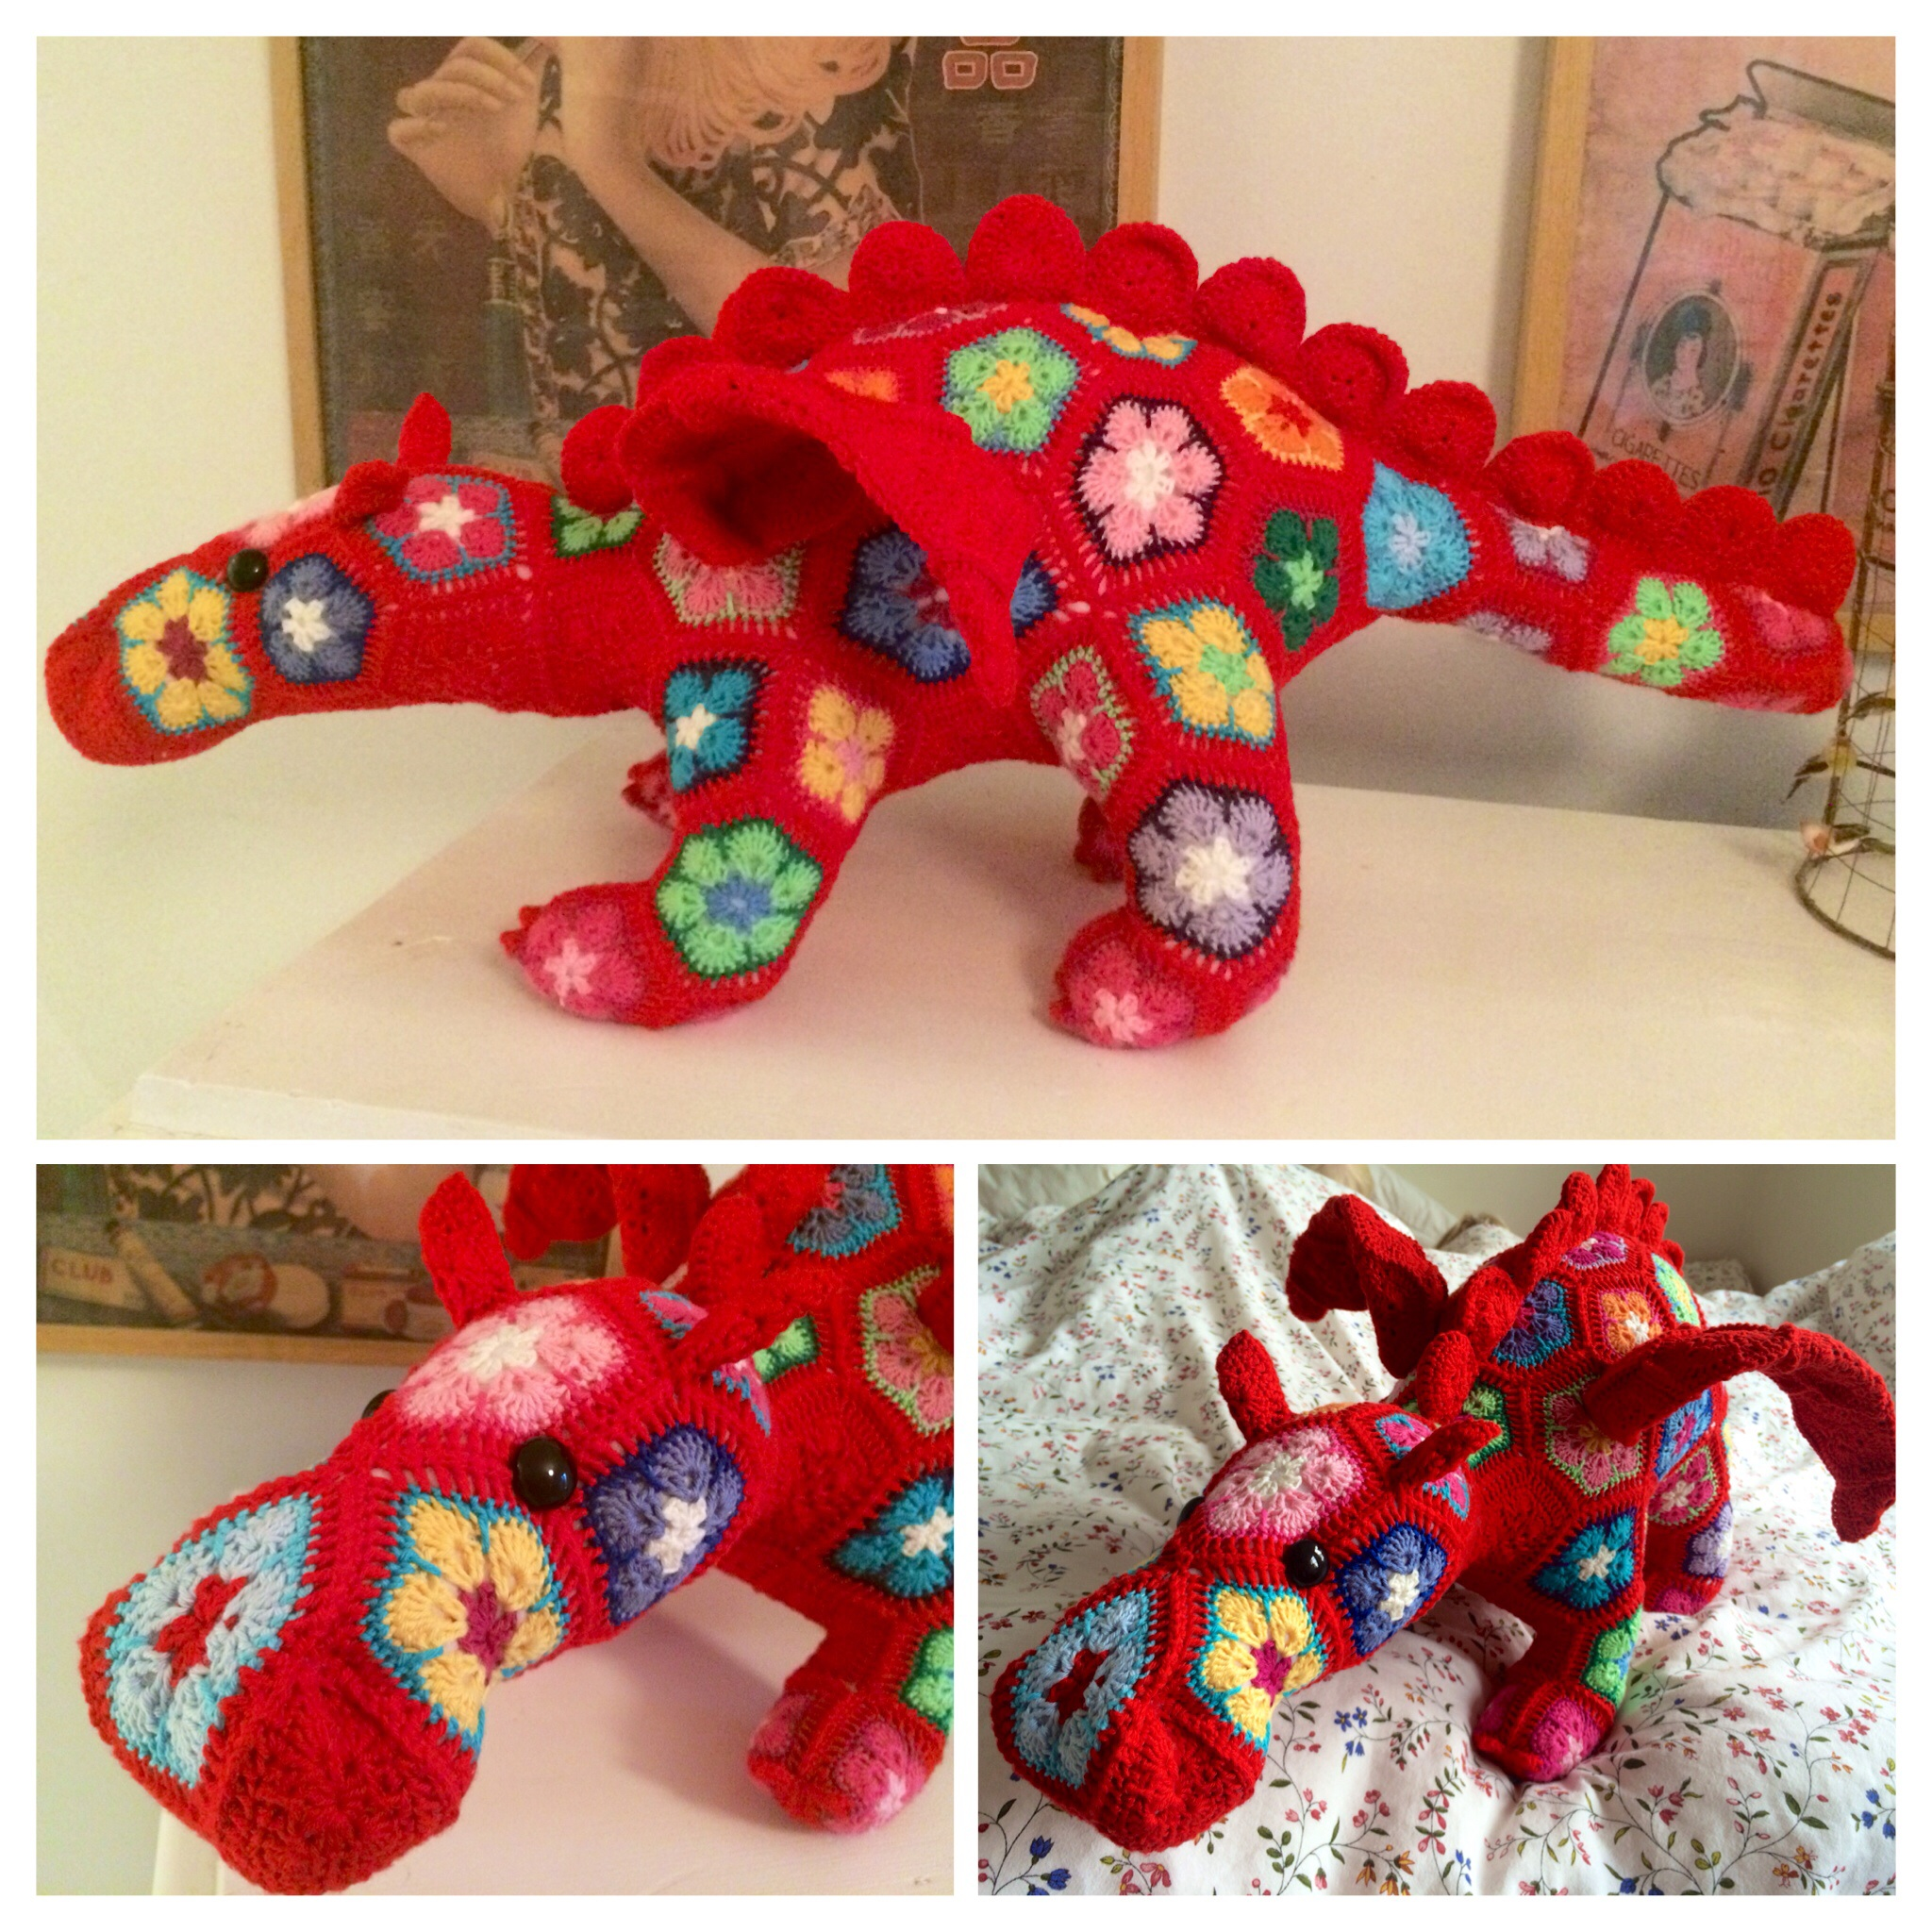 African Flower Crochet Dragon Pattern : Smaug the African Flower dragon - Inspiration - Virkning ...